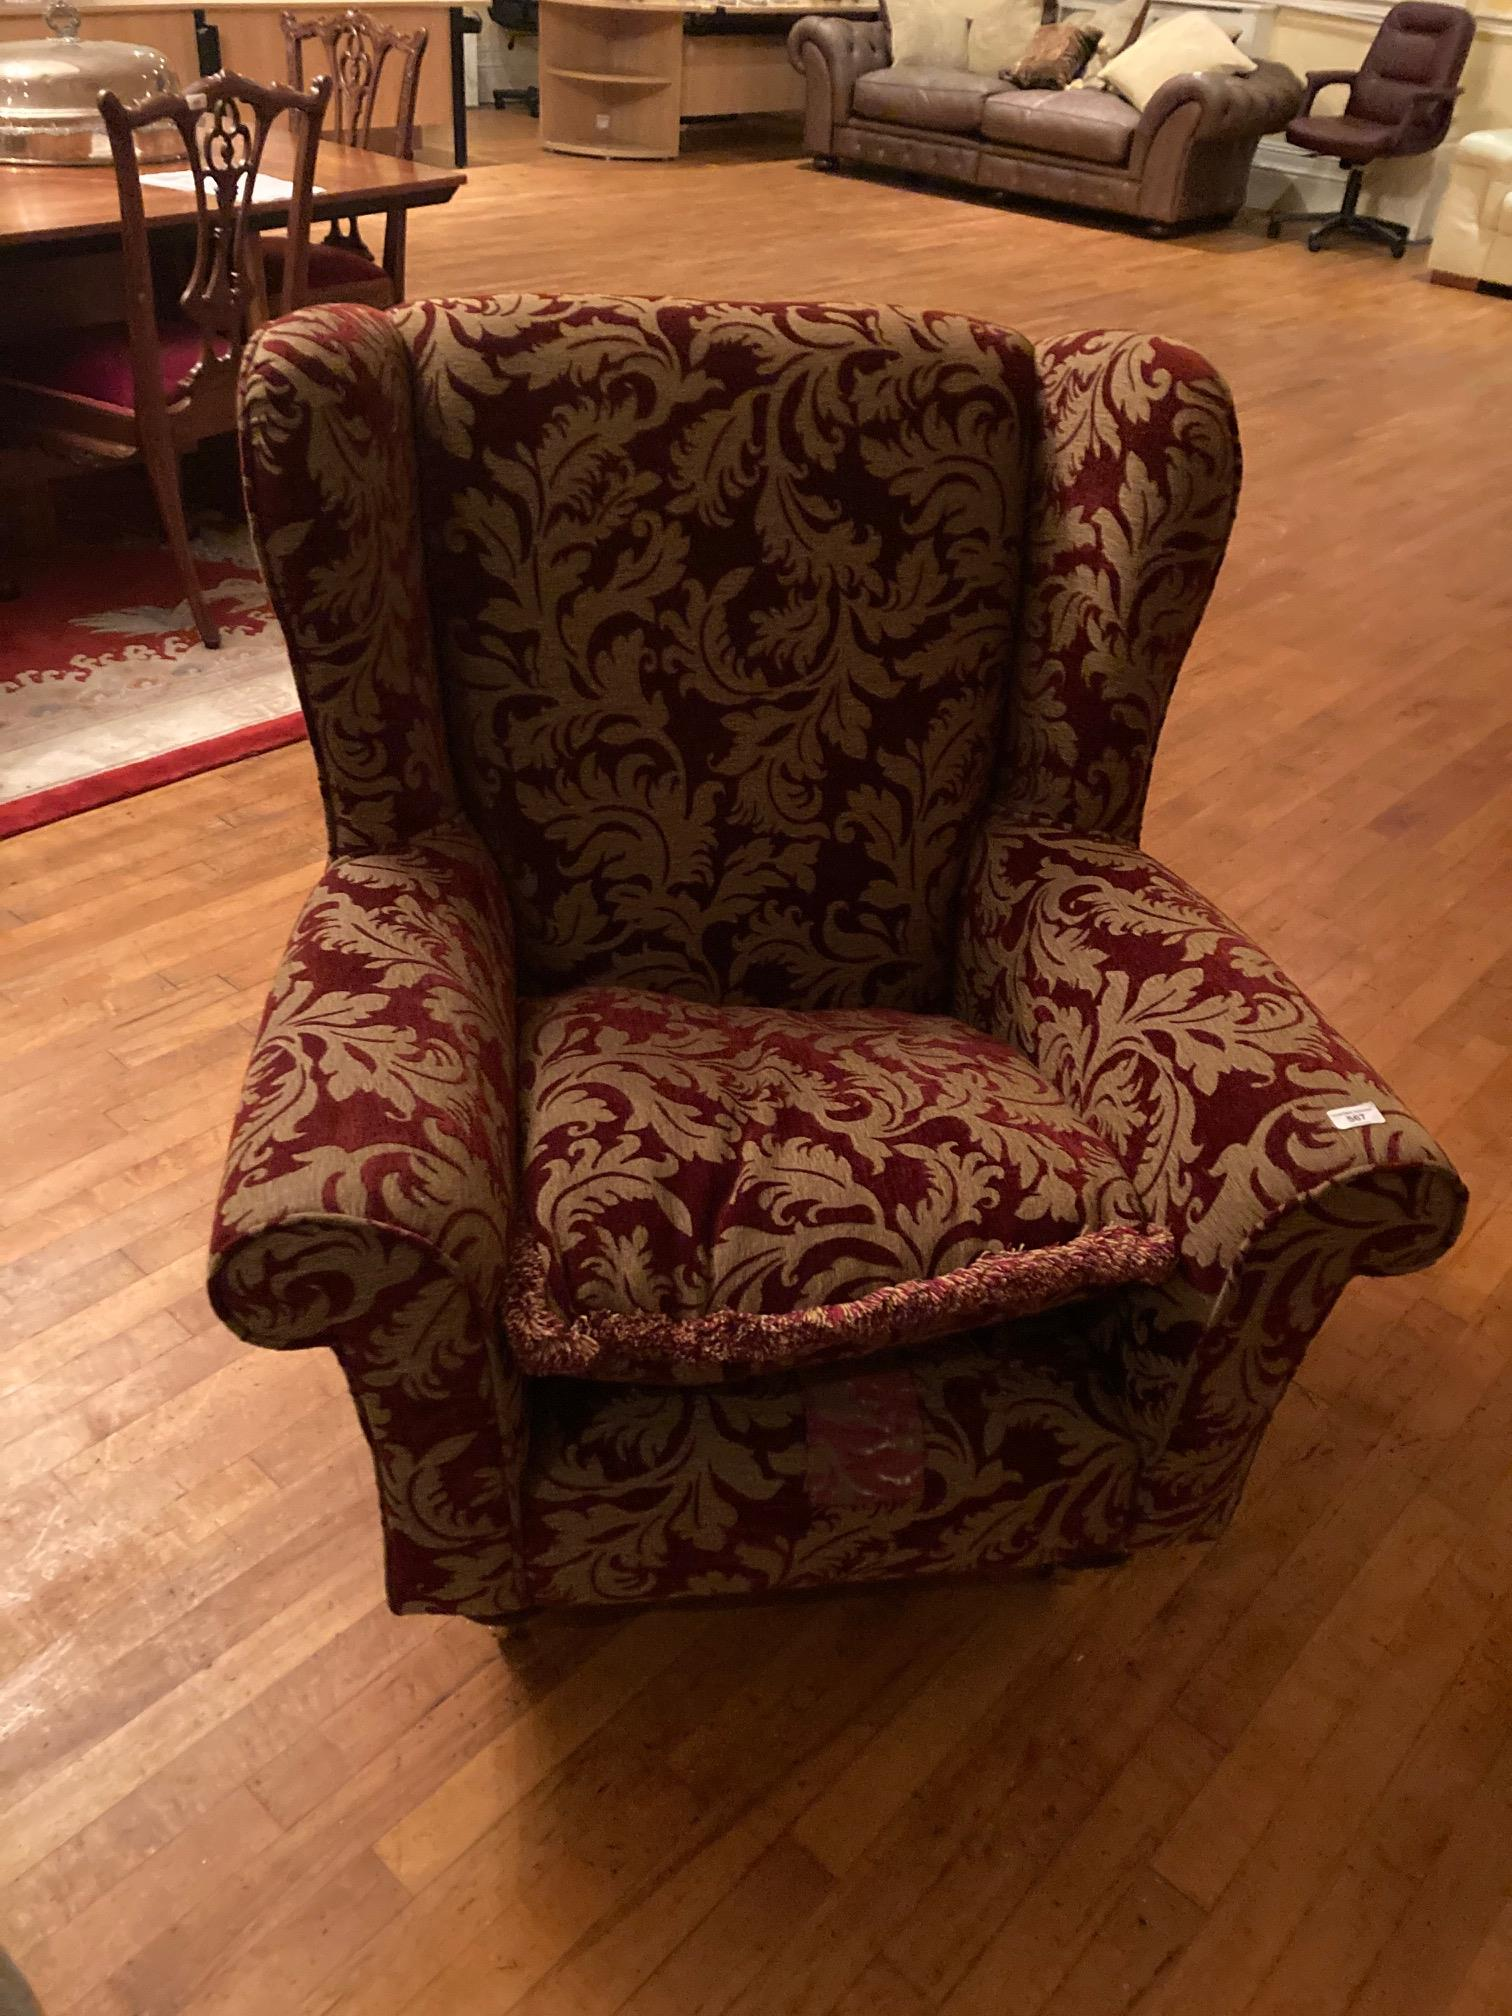 A very good modern Suite of Seat Furniture, comprising a four seater double cushion Settee with - Image 4 of 6